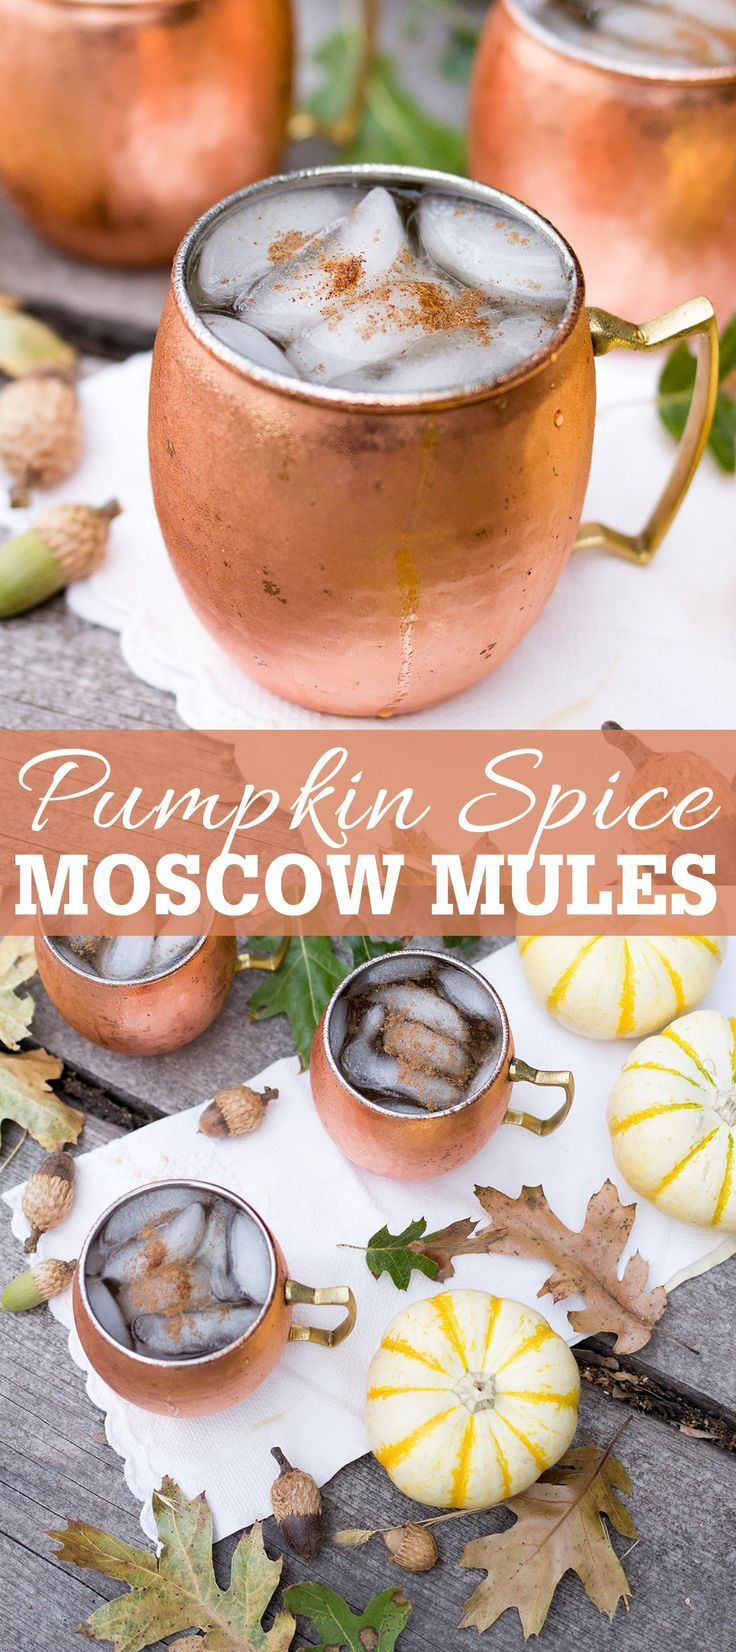 Pumpkin Spice Moscow Mules made with vodka, ginger beer, fresh pumpkin and pumpkin pie spice make for the perfect fall cocktail! #falldrinks